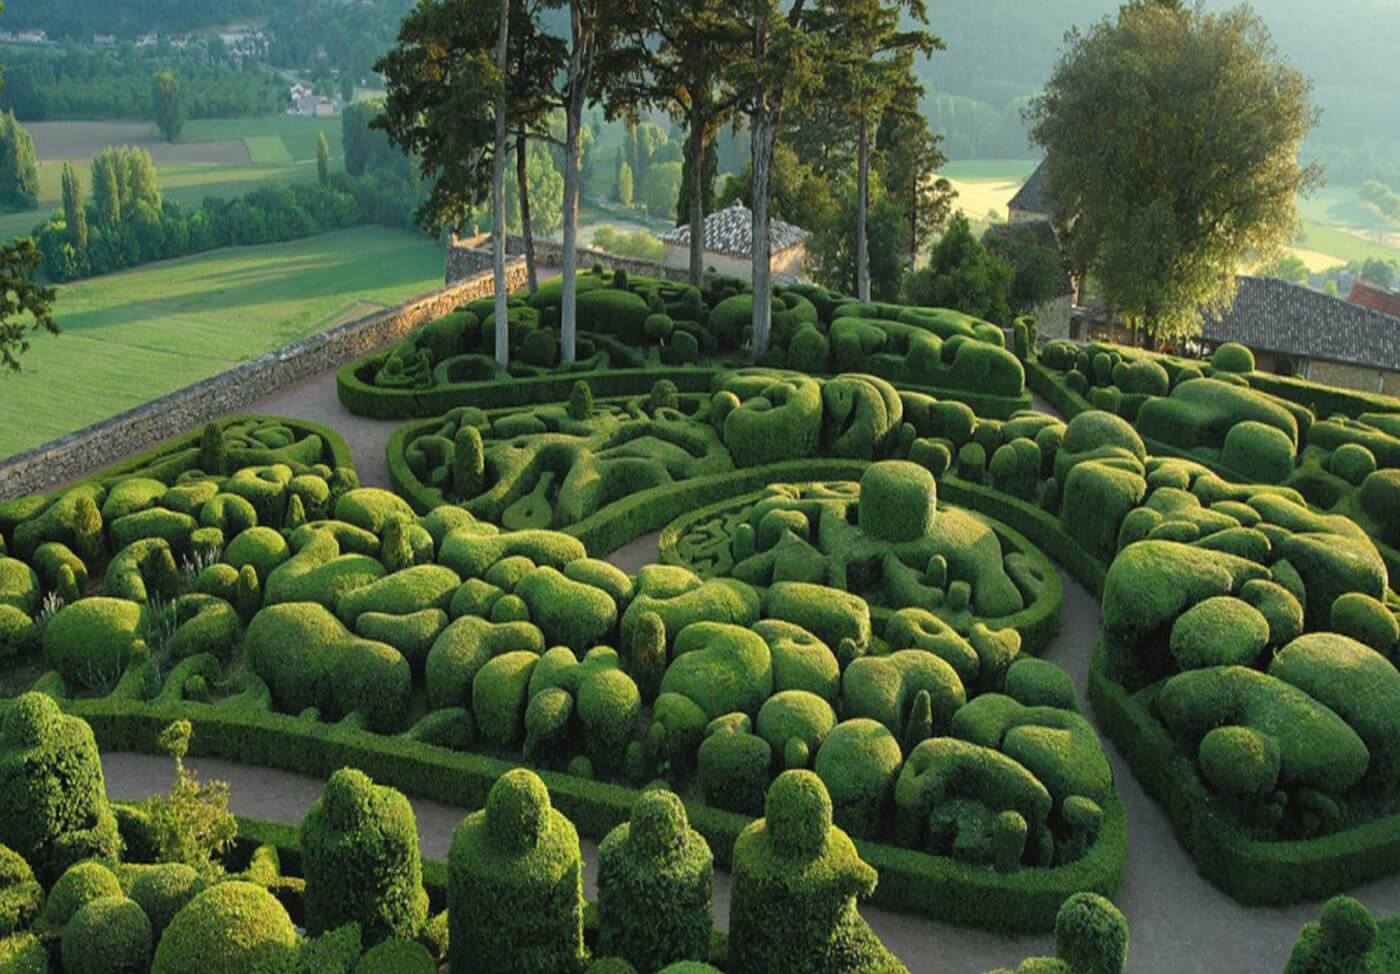 The Marqueyssac Gardens, an Explosion of Evergreen Hedges